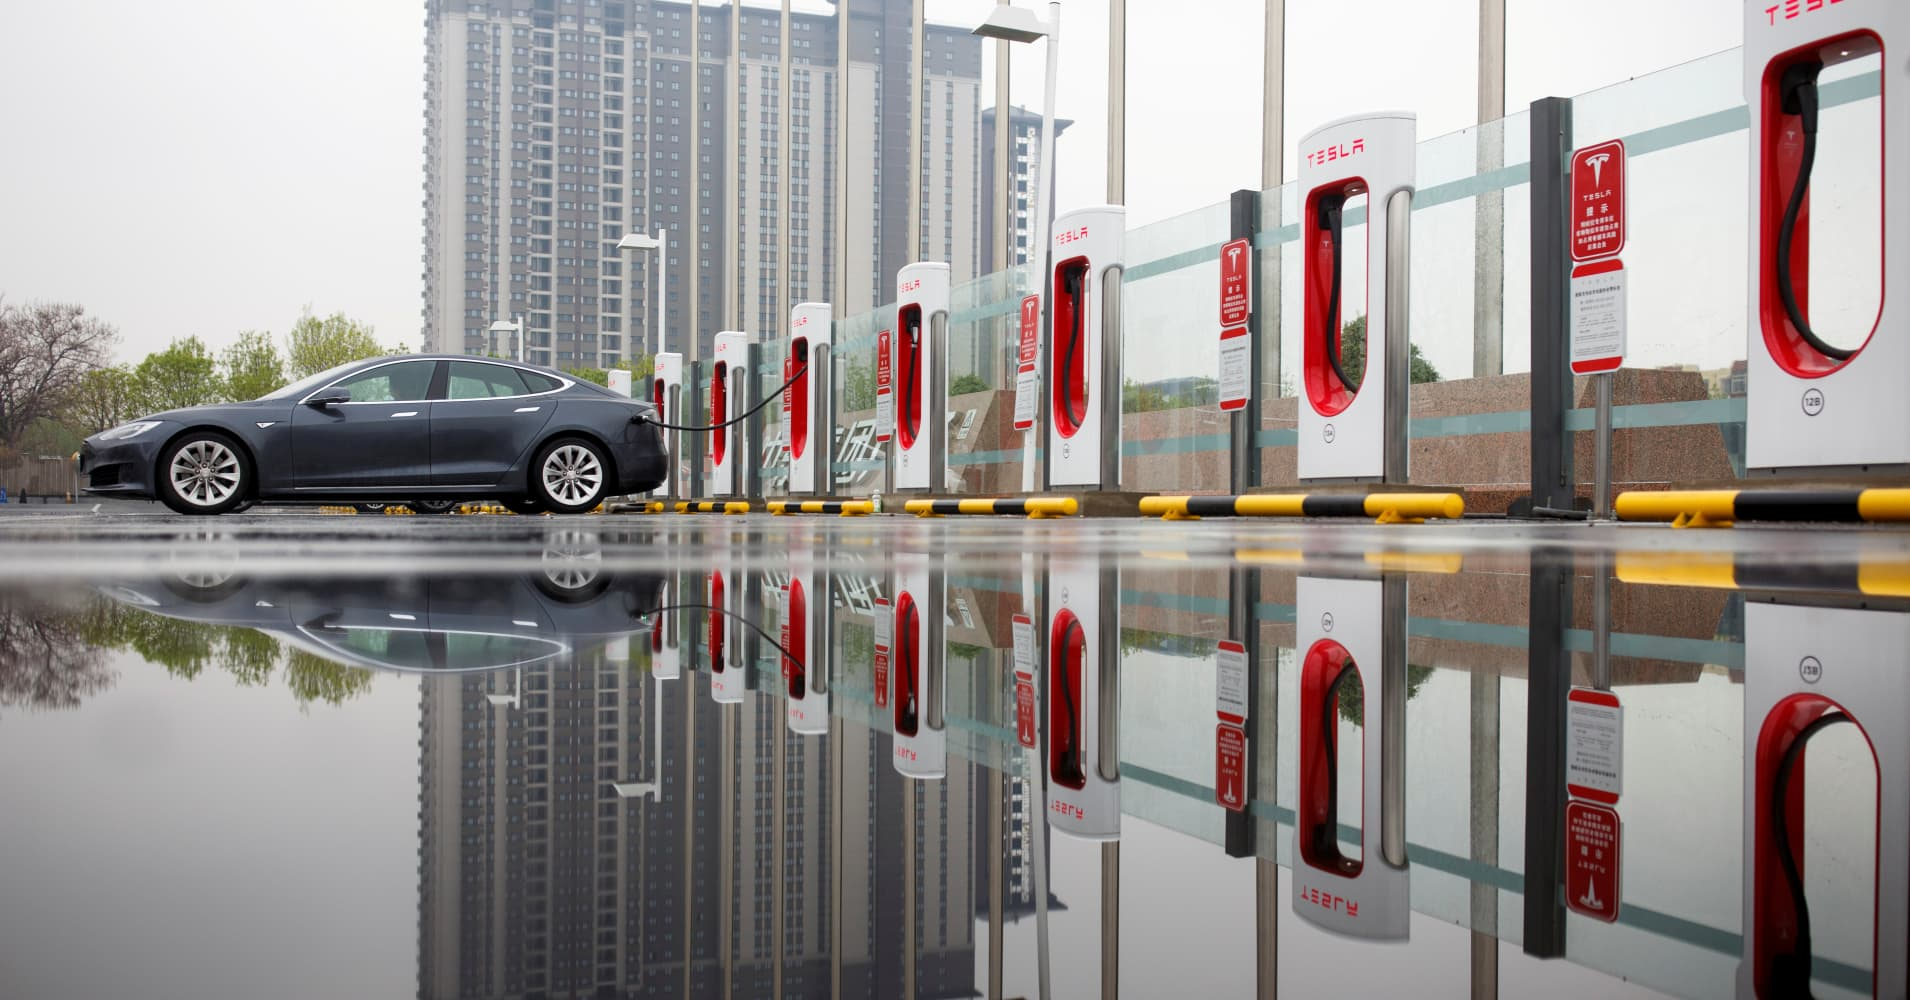 Tesla says new Superchargers let drivers fill up faster, 75 miles of charge in 5 minutes